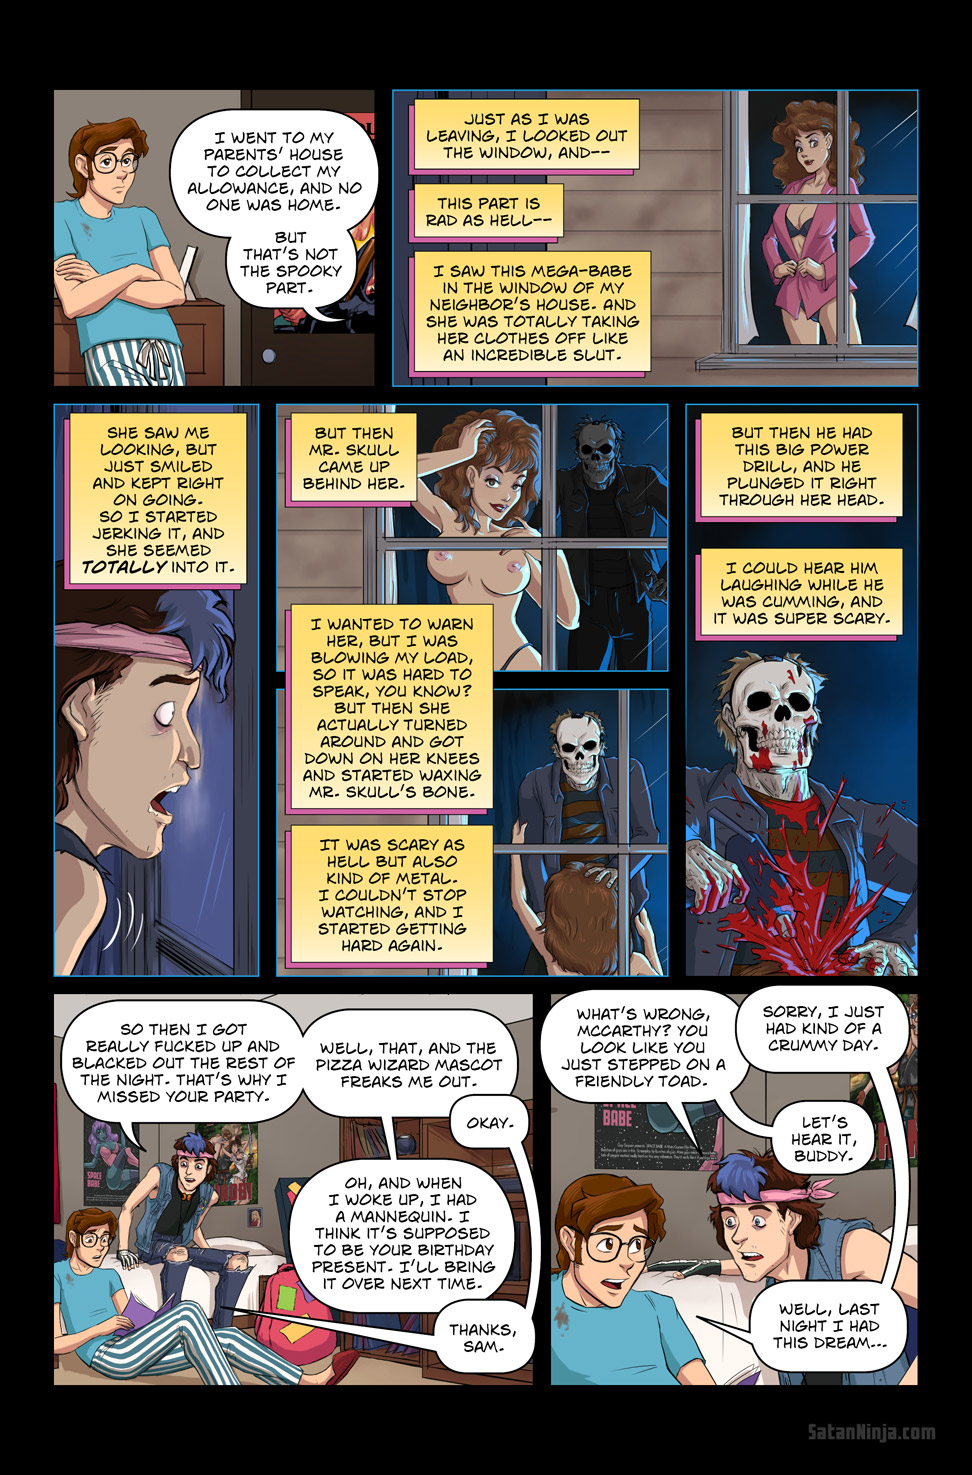 Issue 2, Page 16 - Sam's Horrific Tale of Mr. Skull